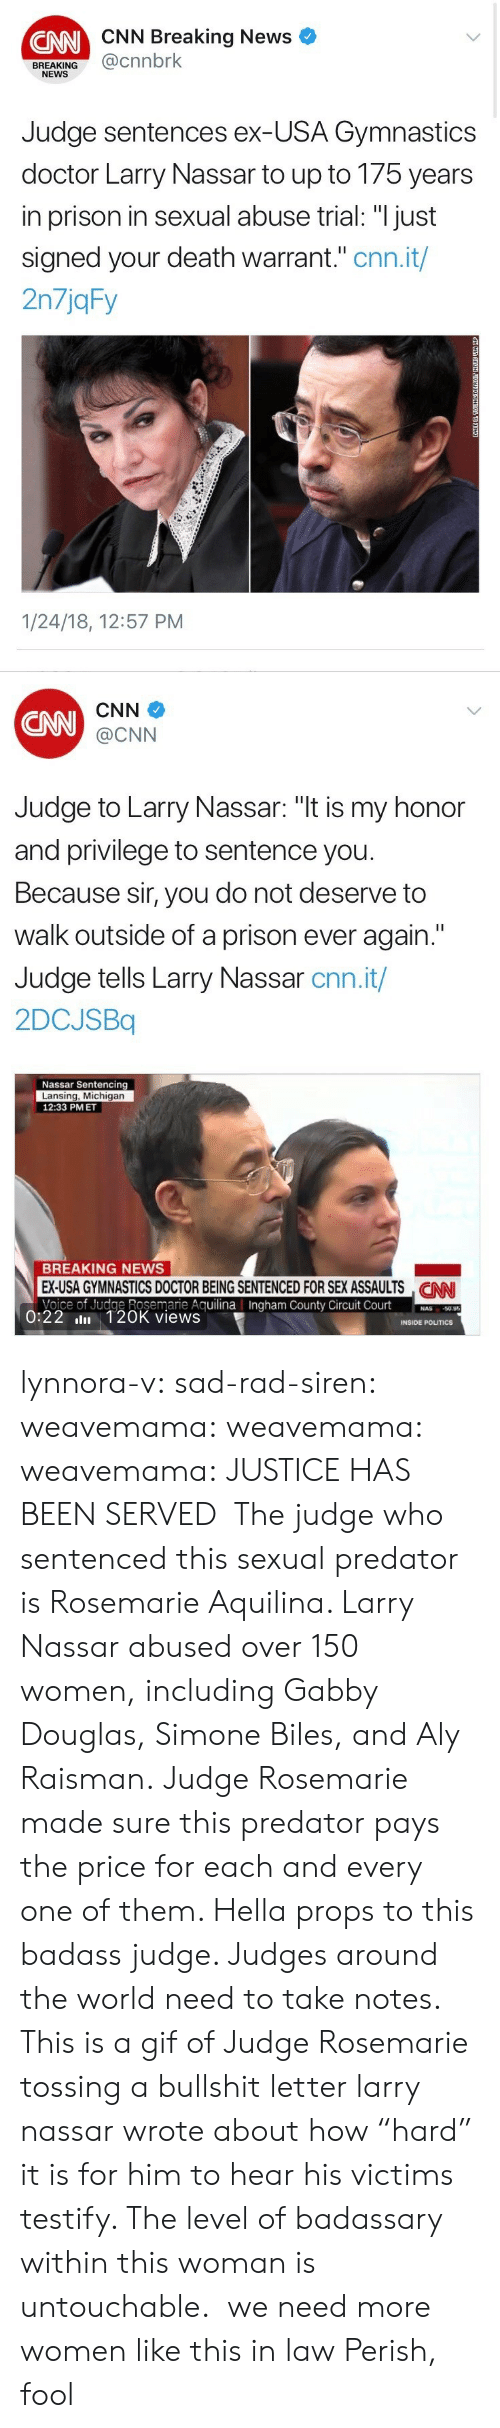 "warrant: CNN Breaking News  CNN  BREAKING@cnnbrk  NEWS  Judge sentences ex-USA Gymnastics  doctor Larry Nassar to up to 175 years  in prison in sexual abuse trial: ""I just  signed your death warrant."" cnn.it/  2n7jqFy  1/24/18, 12:57 PM   CNN  CNN  @CNN  Judge to Larry Nassar: ""t is my honor  and privilege to sentence you  Because sir, you do not deserve to  walk outside of a prison ever again.""  Judge tells Larry Nassar cnn.it/  2DCJSBq  Nassar Sentencing  Lansing, Michigan  12:33 PMET  BREAKING NEWS  EX-USA GYMNASTICS DOCTOR BEING SENTENCED FOR SEX ASSAULTS NN  Voice of Judge Rosemarie AguilinaIngham County Circuit Court0  CAN  County  50.95  0:22 